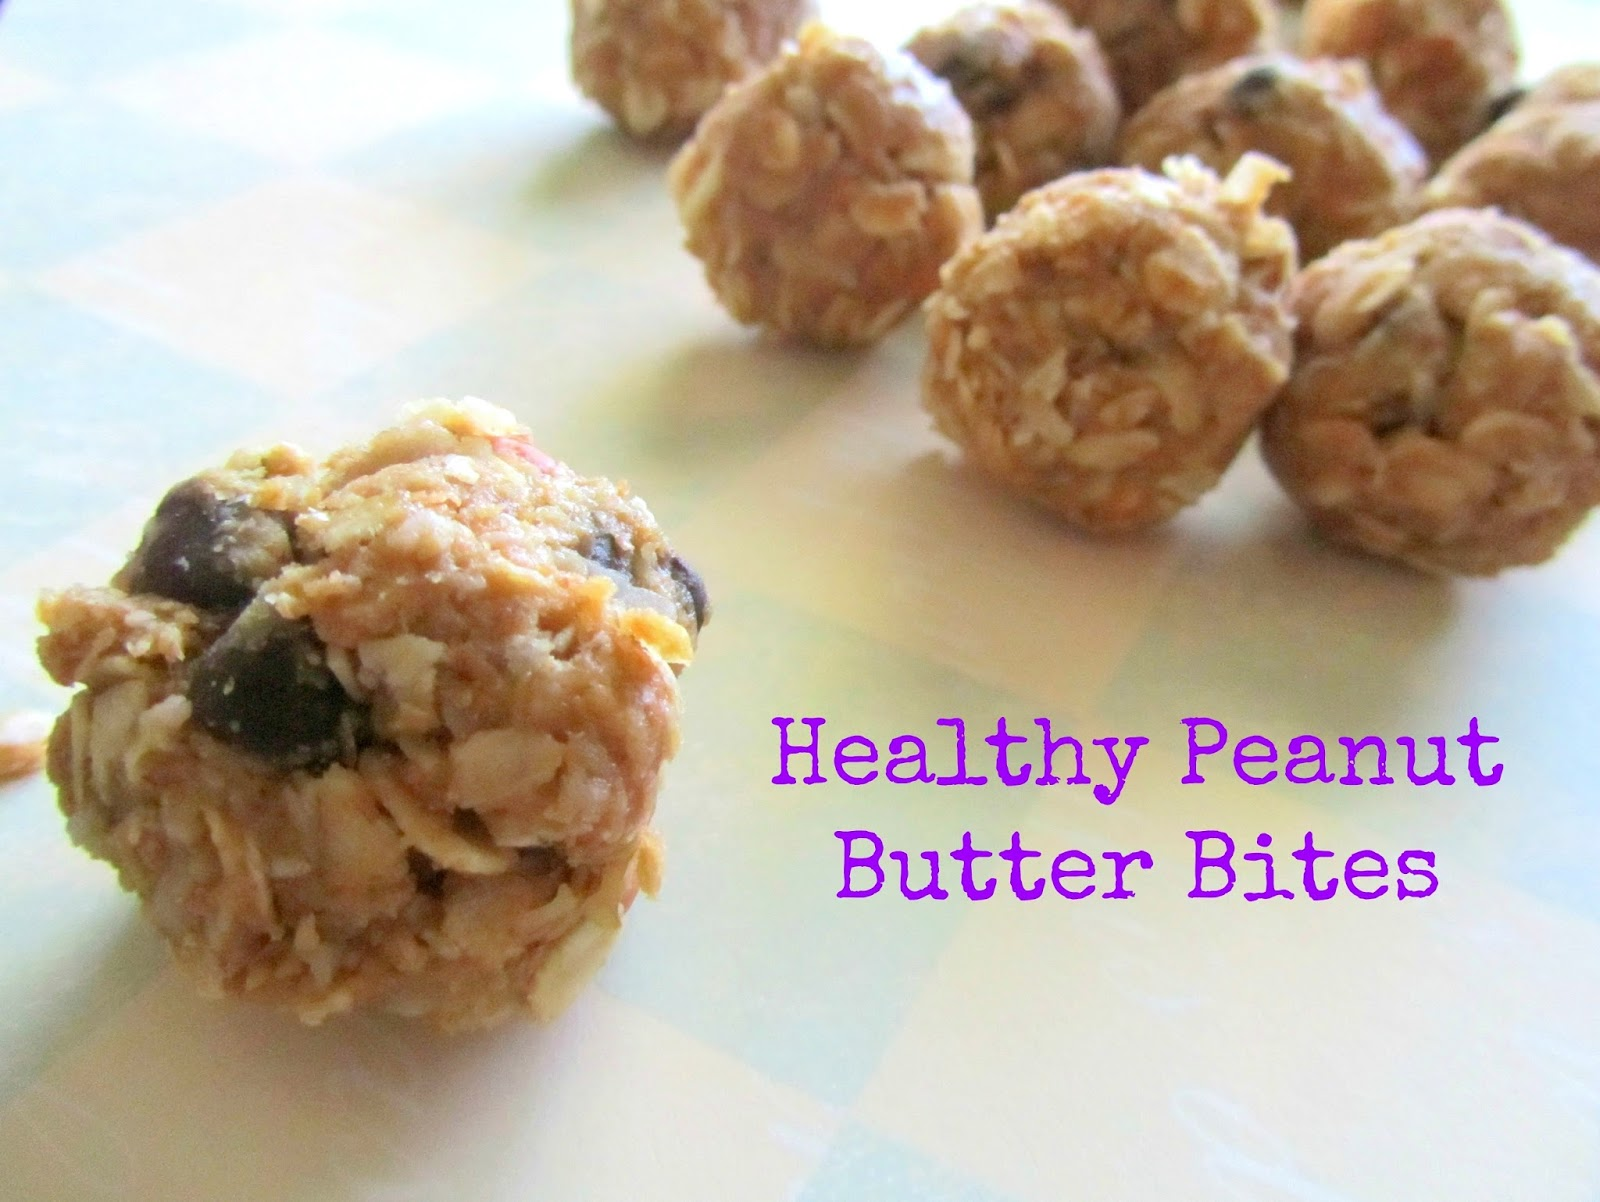 Pinning with Purpose: Healthy Peanut Butter Bites